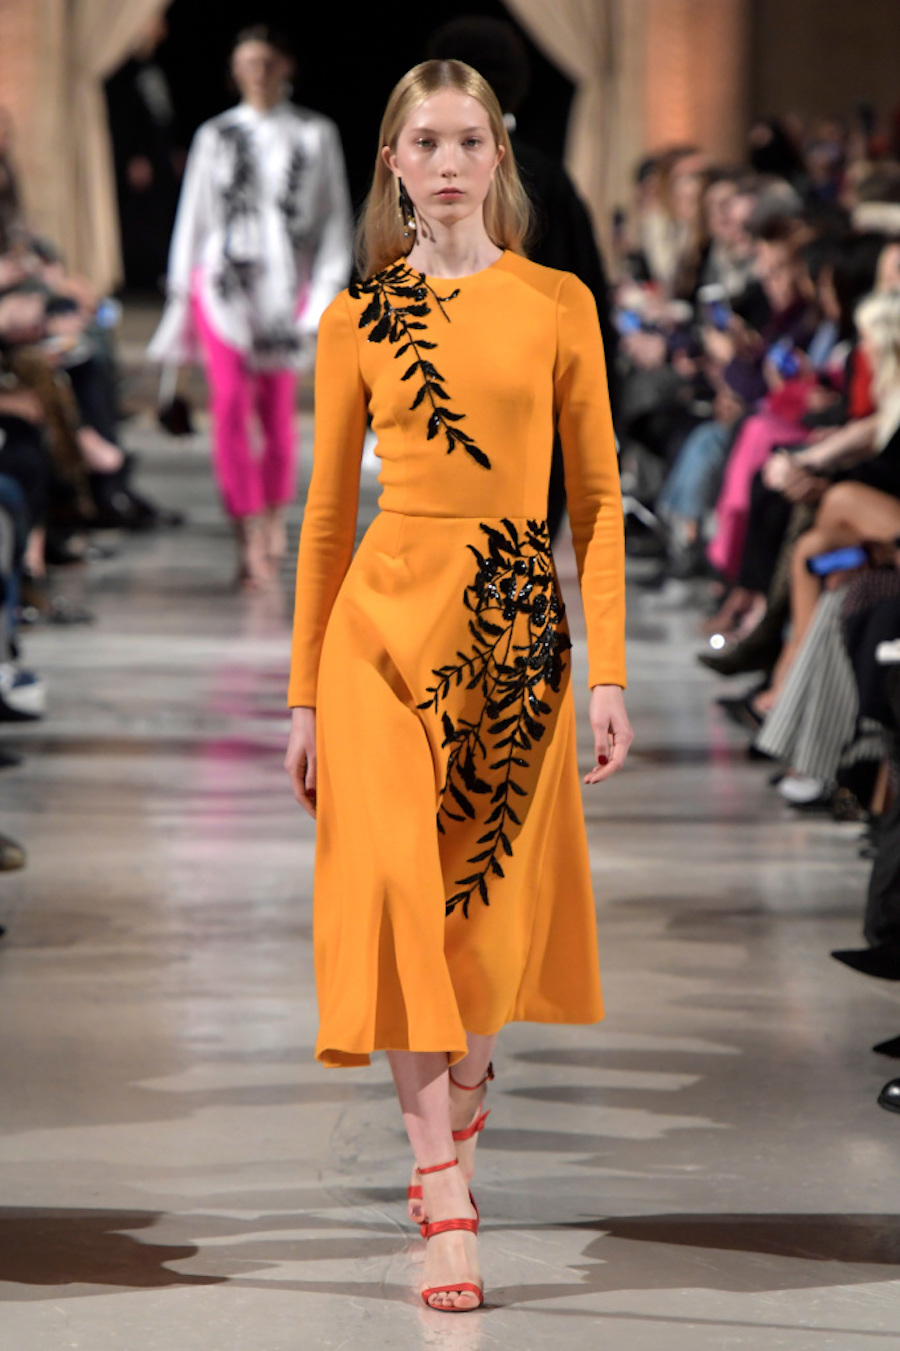 Yves St Laurent, Balmain, Oscar De La Renta, Tom Ford, New York Fashion Week 2018, Vivince, Fashion Watch